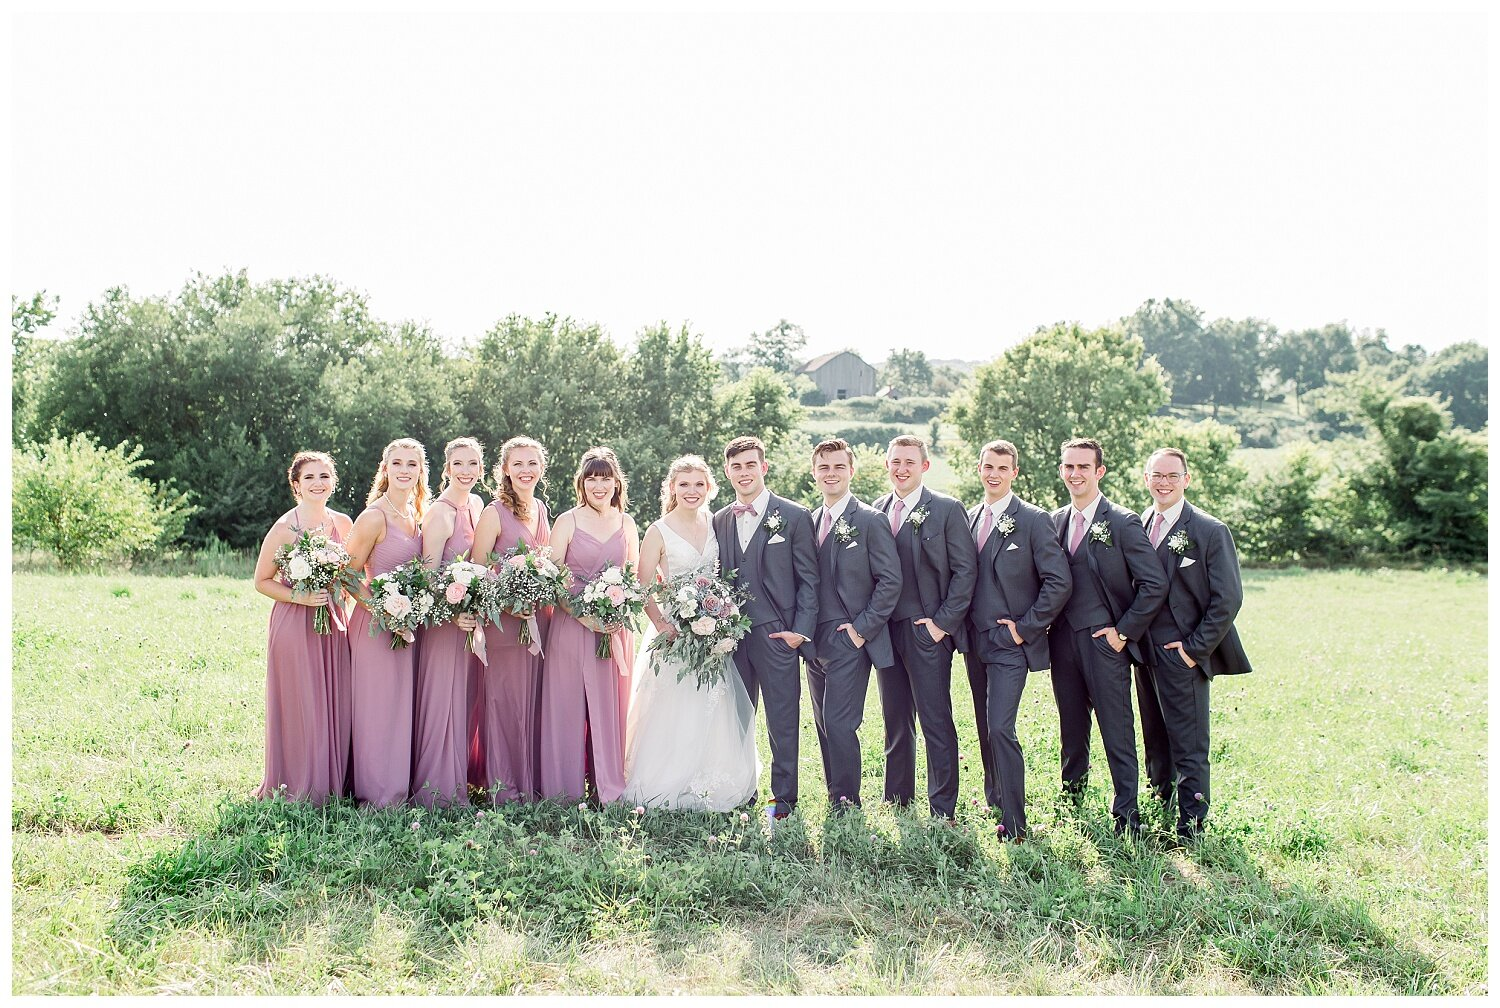 bridal party photos in a field